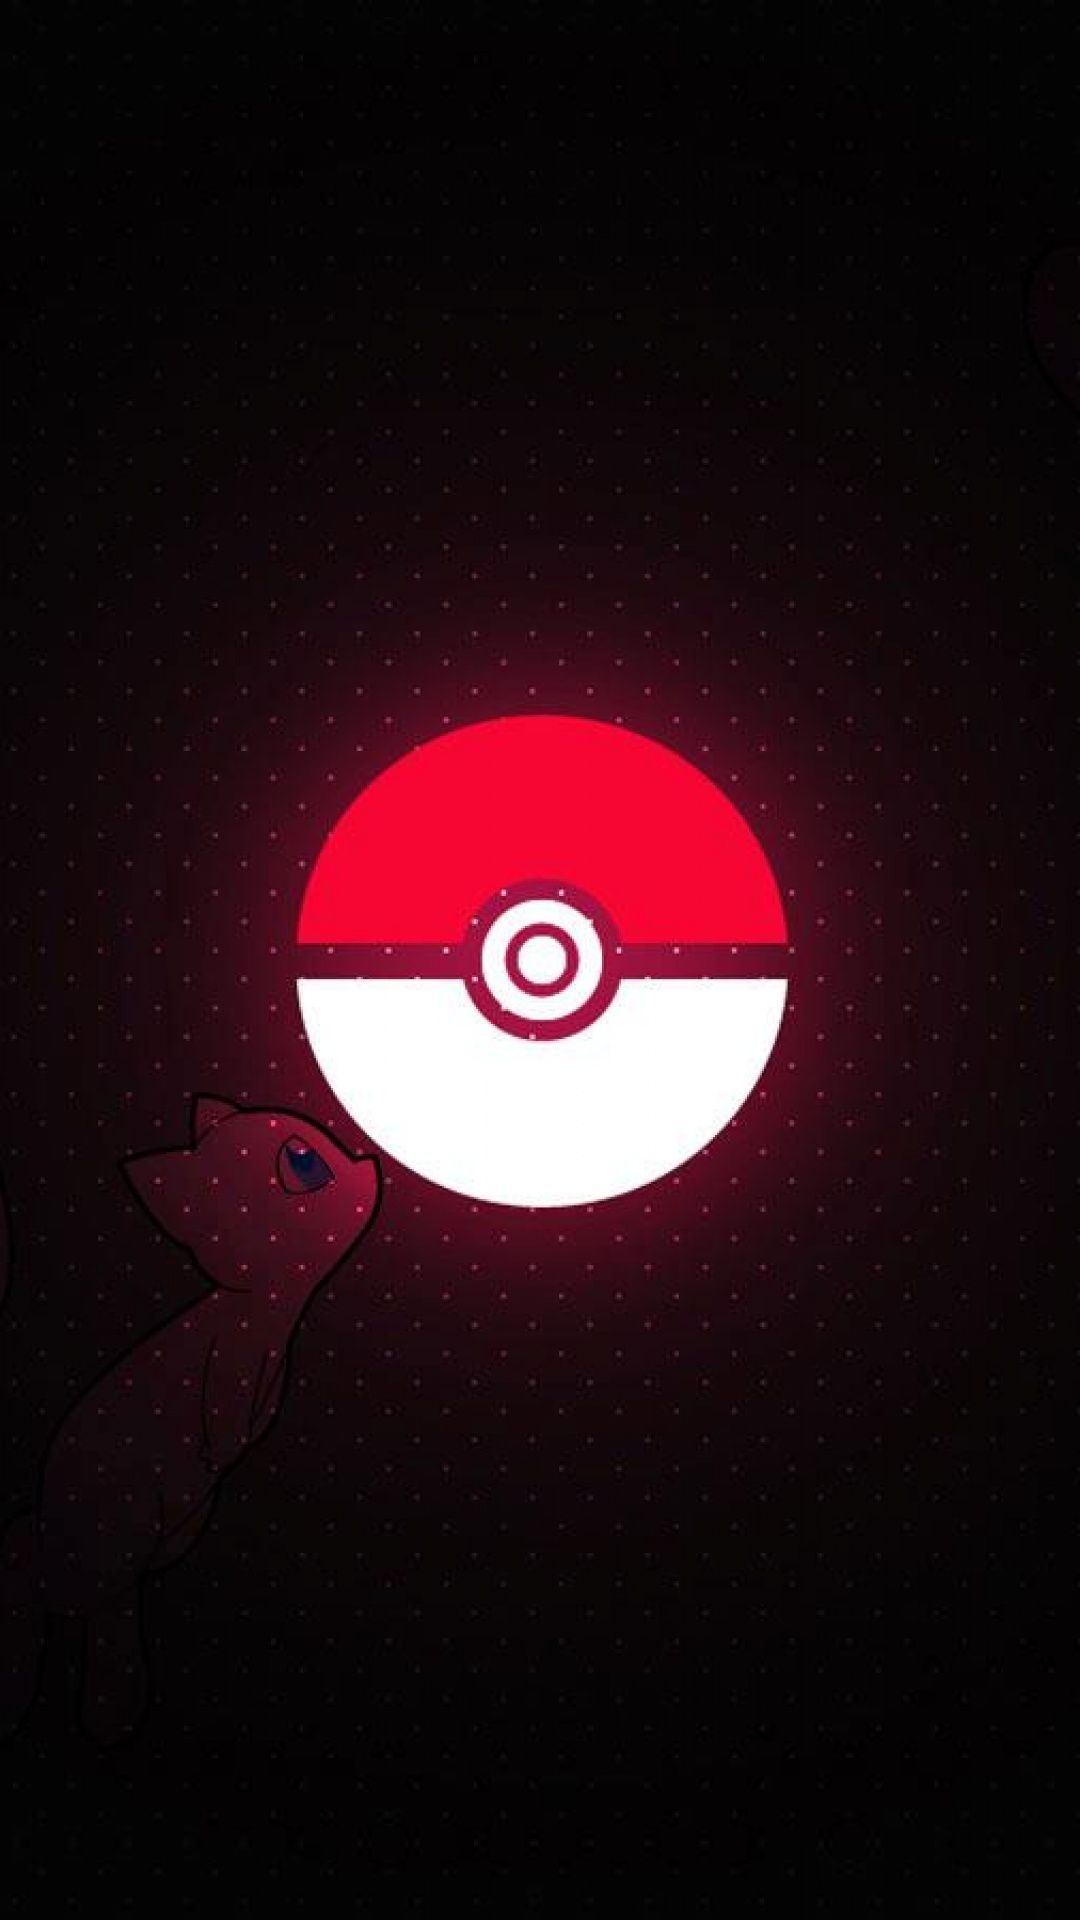 Pokemon Iphone Wallpaper Pokemon Android Wallpaper Pikachu Wallpaper Pokemon